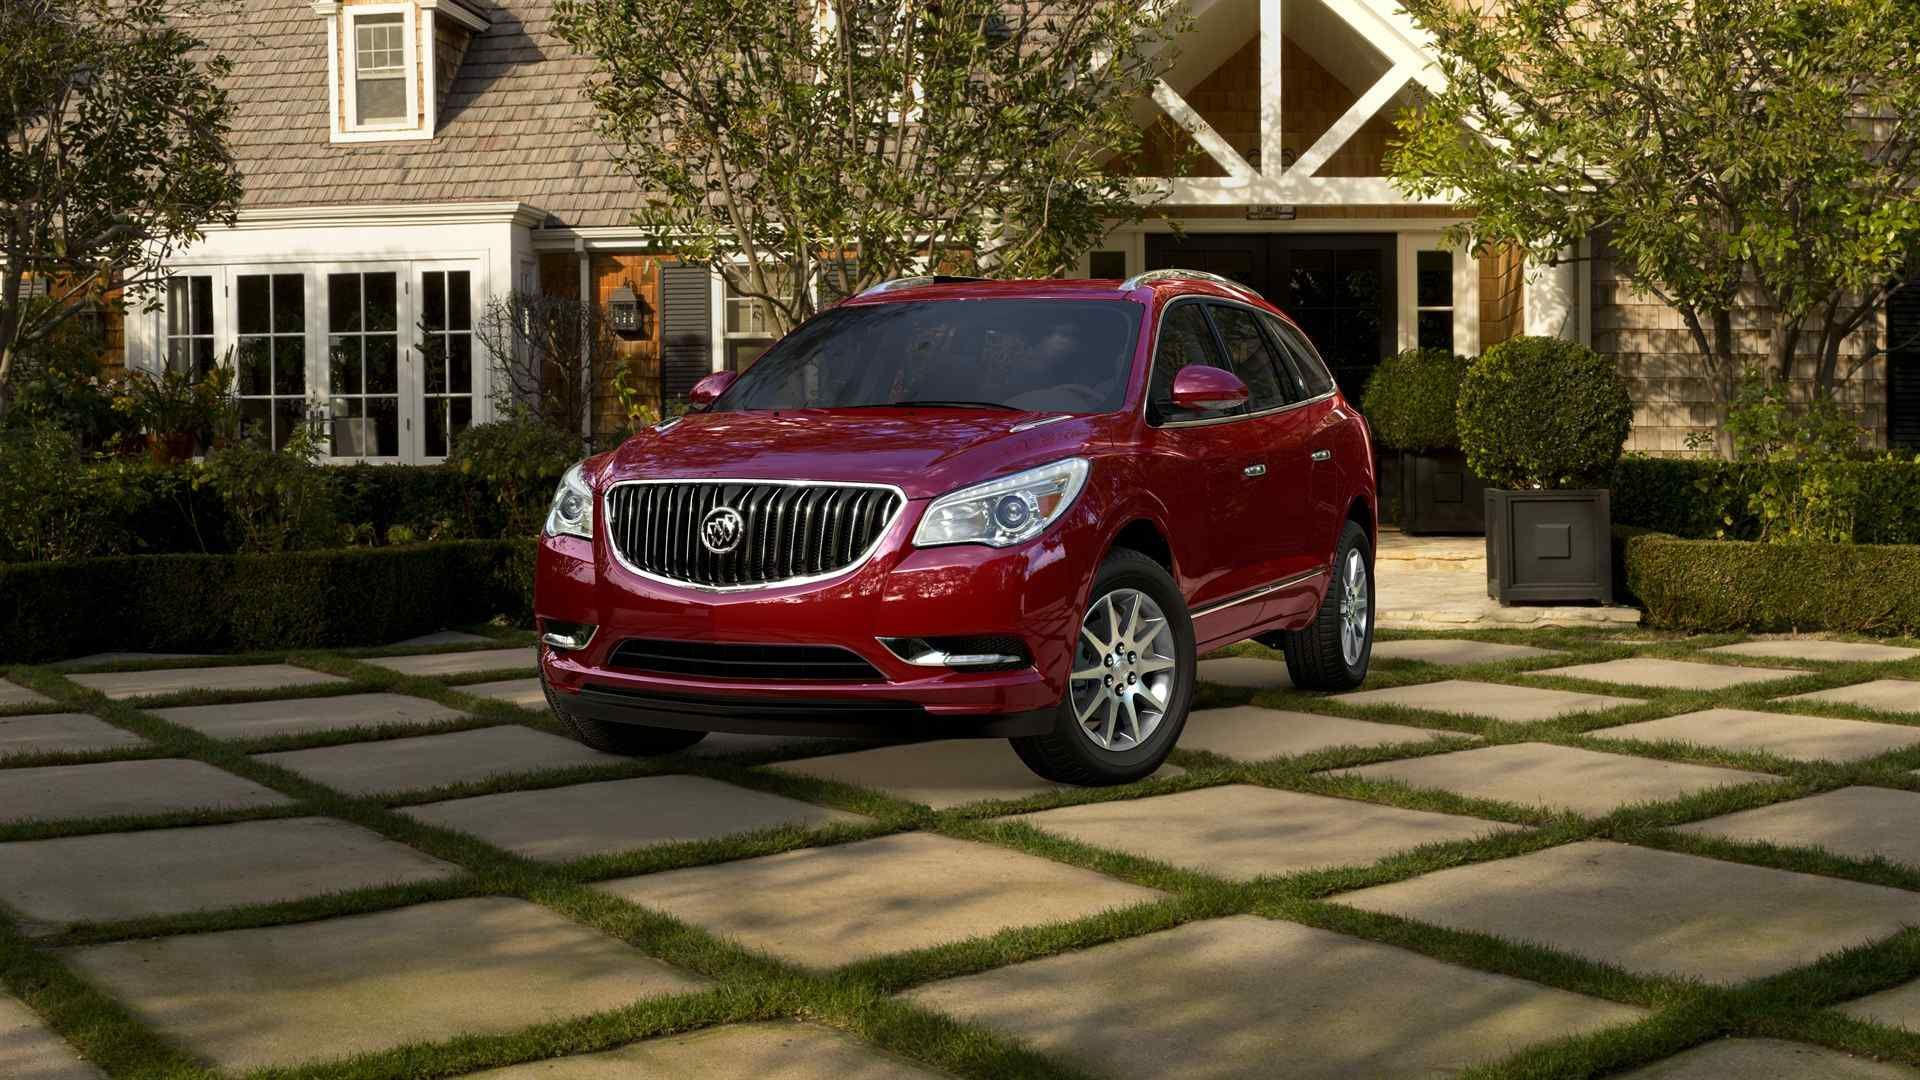 2014 Buick Enclave Crystal Red Tintcoat Luxury Crossovers Buick